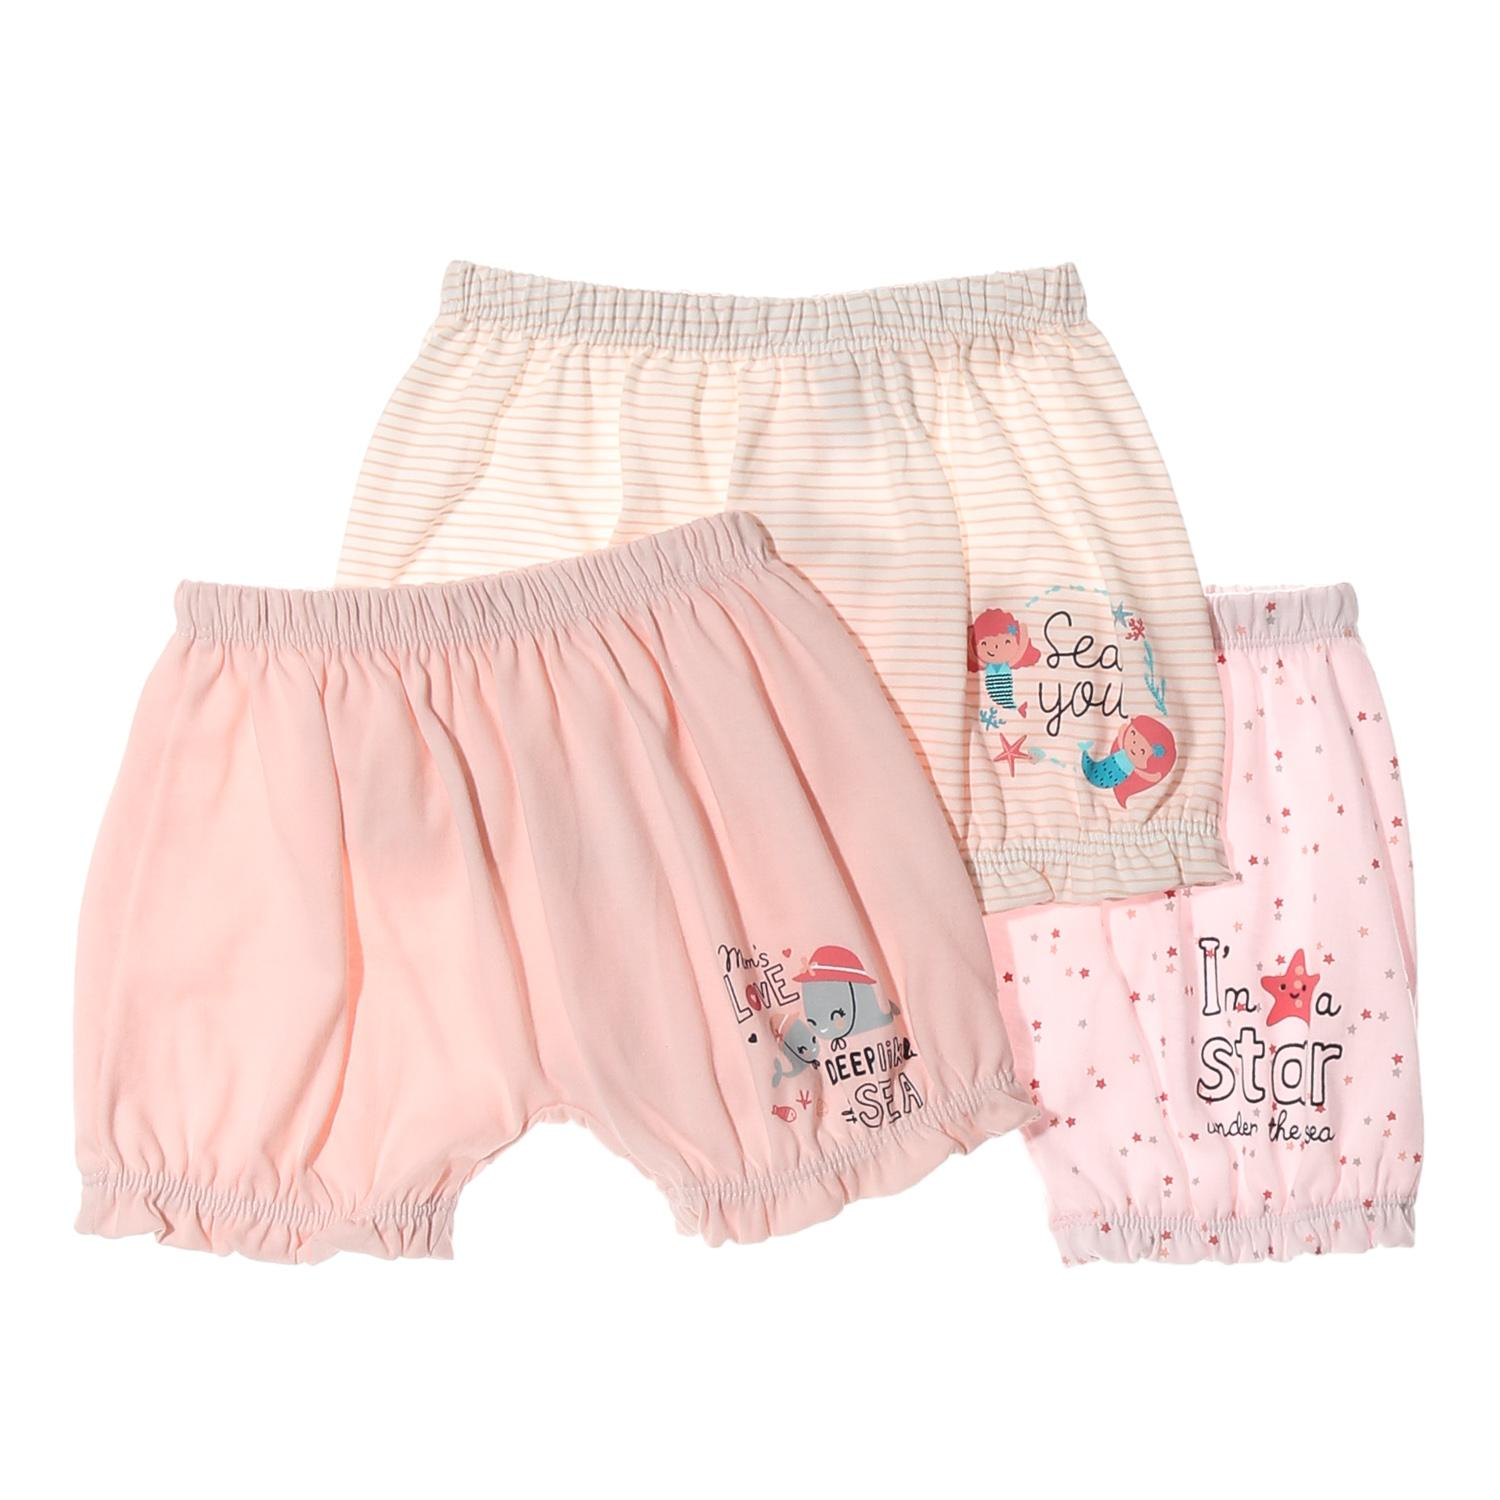 e39cf52cf Girls Clothing Sets for sale - Clothing Sets for Baby Girls Online ...